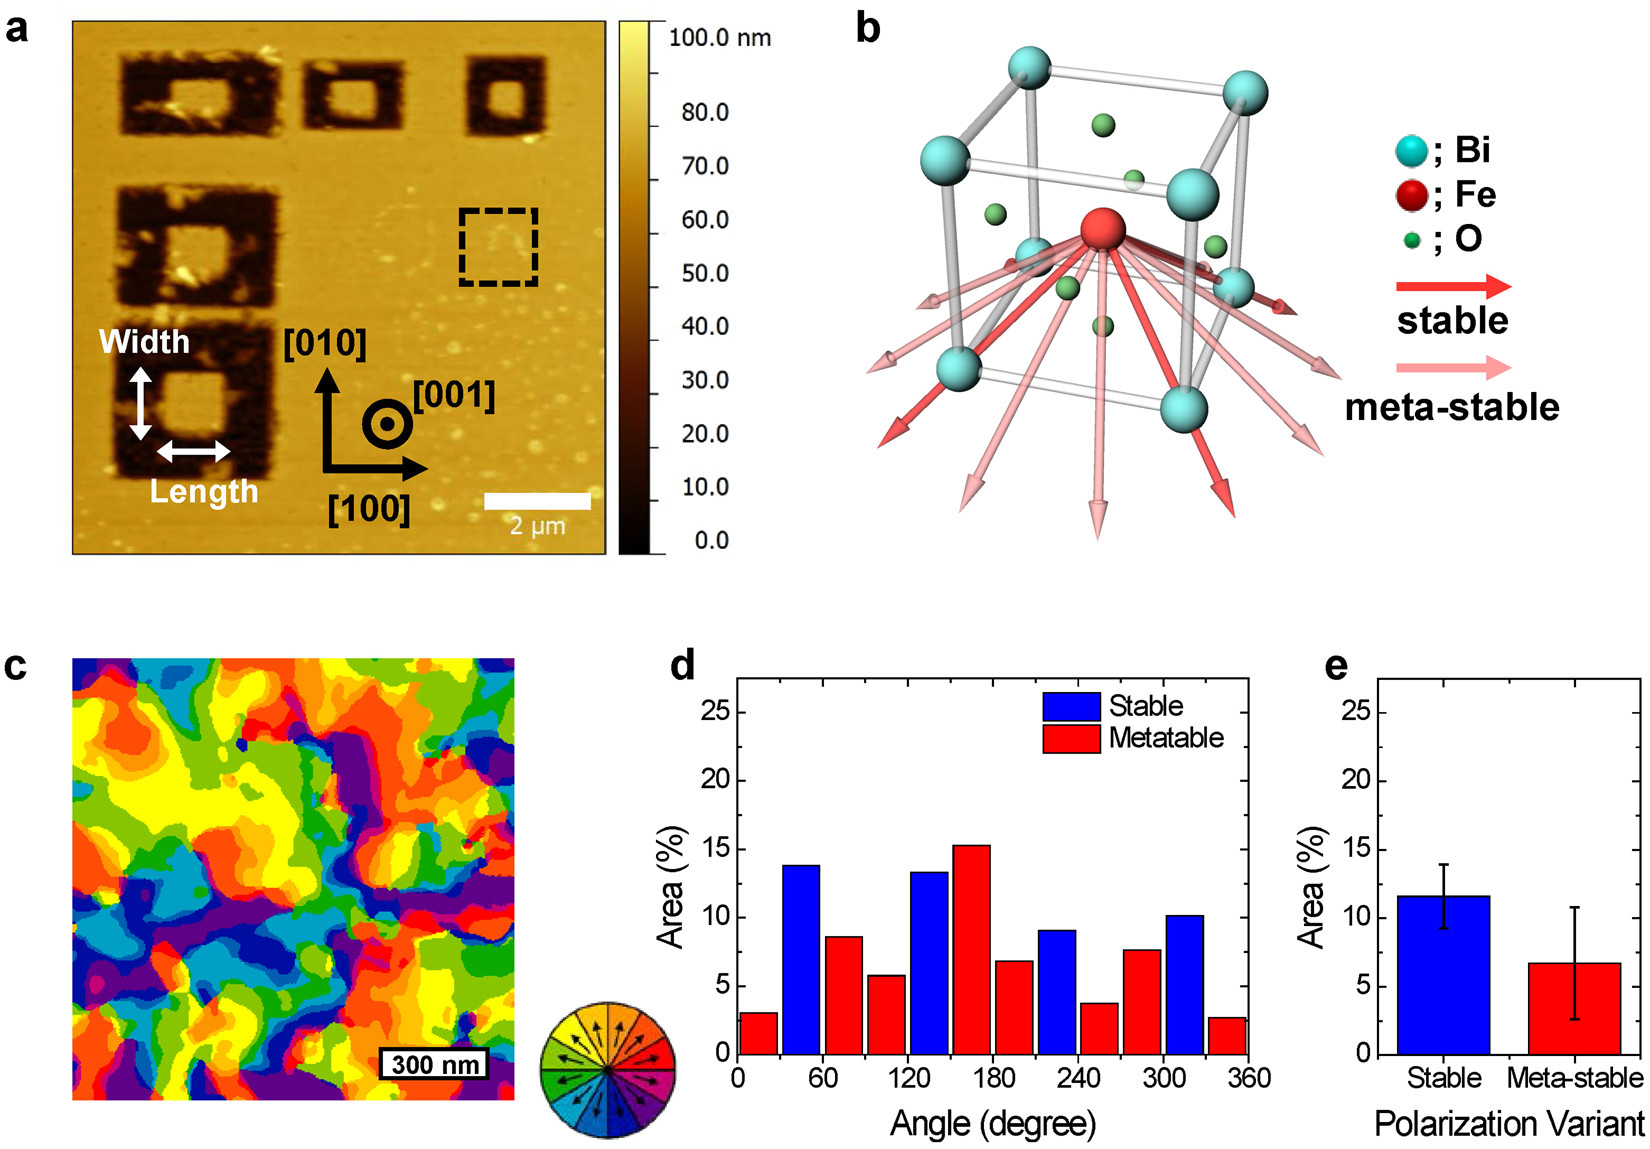 "Figure 1 from ""Ferroelectric Domain Studies of Patterned (001) BiFeO 3 by Angle- Resolved Piezoresponse Force Microscopy"": Patterned mesas are separated from the continuous film by lithography, as shown in the AFM topography image. (b) Schematic drawing of the atomic structure of BFO with angle-resolved polarization models. The Fe (red sphere) atom can be displaced towards twelve possible polarization orientations with respect to its centrosymmetric position. (c) AR-PFM domain map of a 1.2 × 1.2 μm2 area of unpatterned BFO film, corresponding to the black dashed area in (a). (d) The area distribution of each polarization variant according to angle relative to the [100] direction. (e) The average area of stable and meta-stable polarization variants."